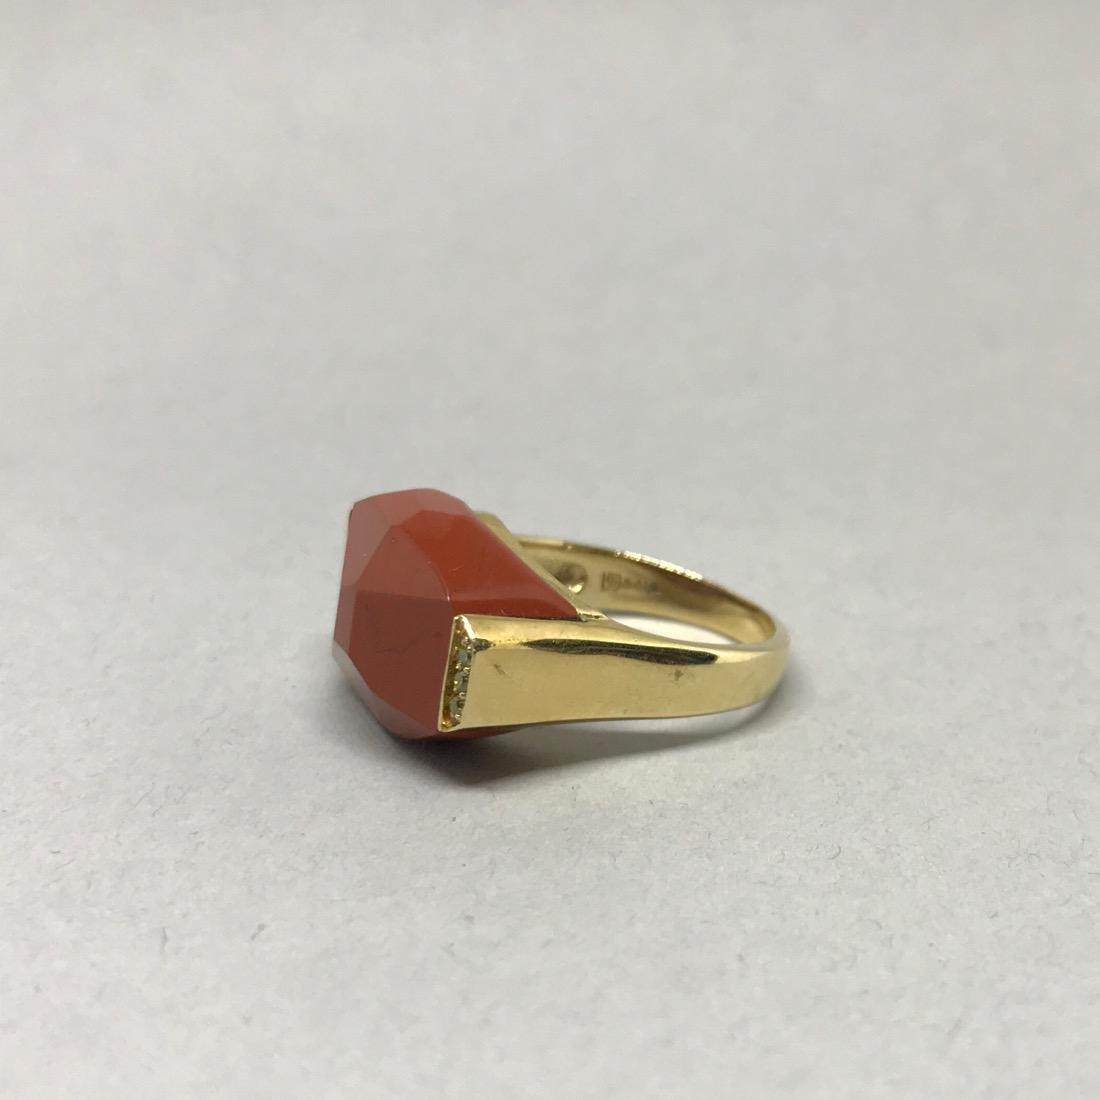 14Kt Gold Ring with Jasper & Diamonds - 3